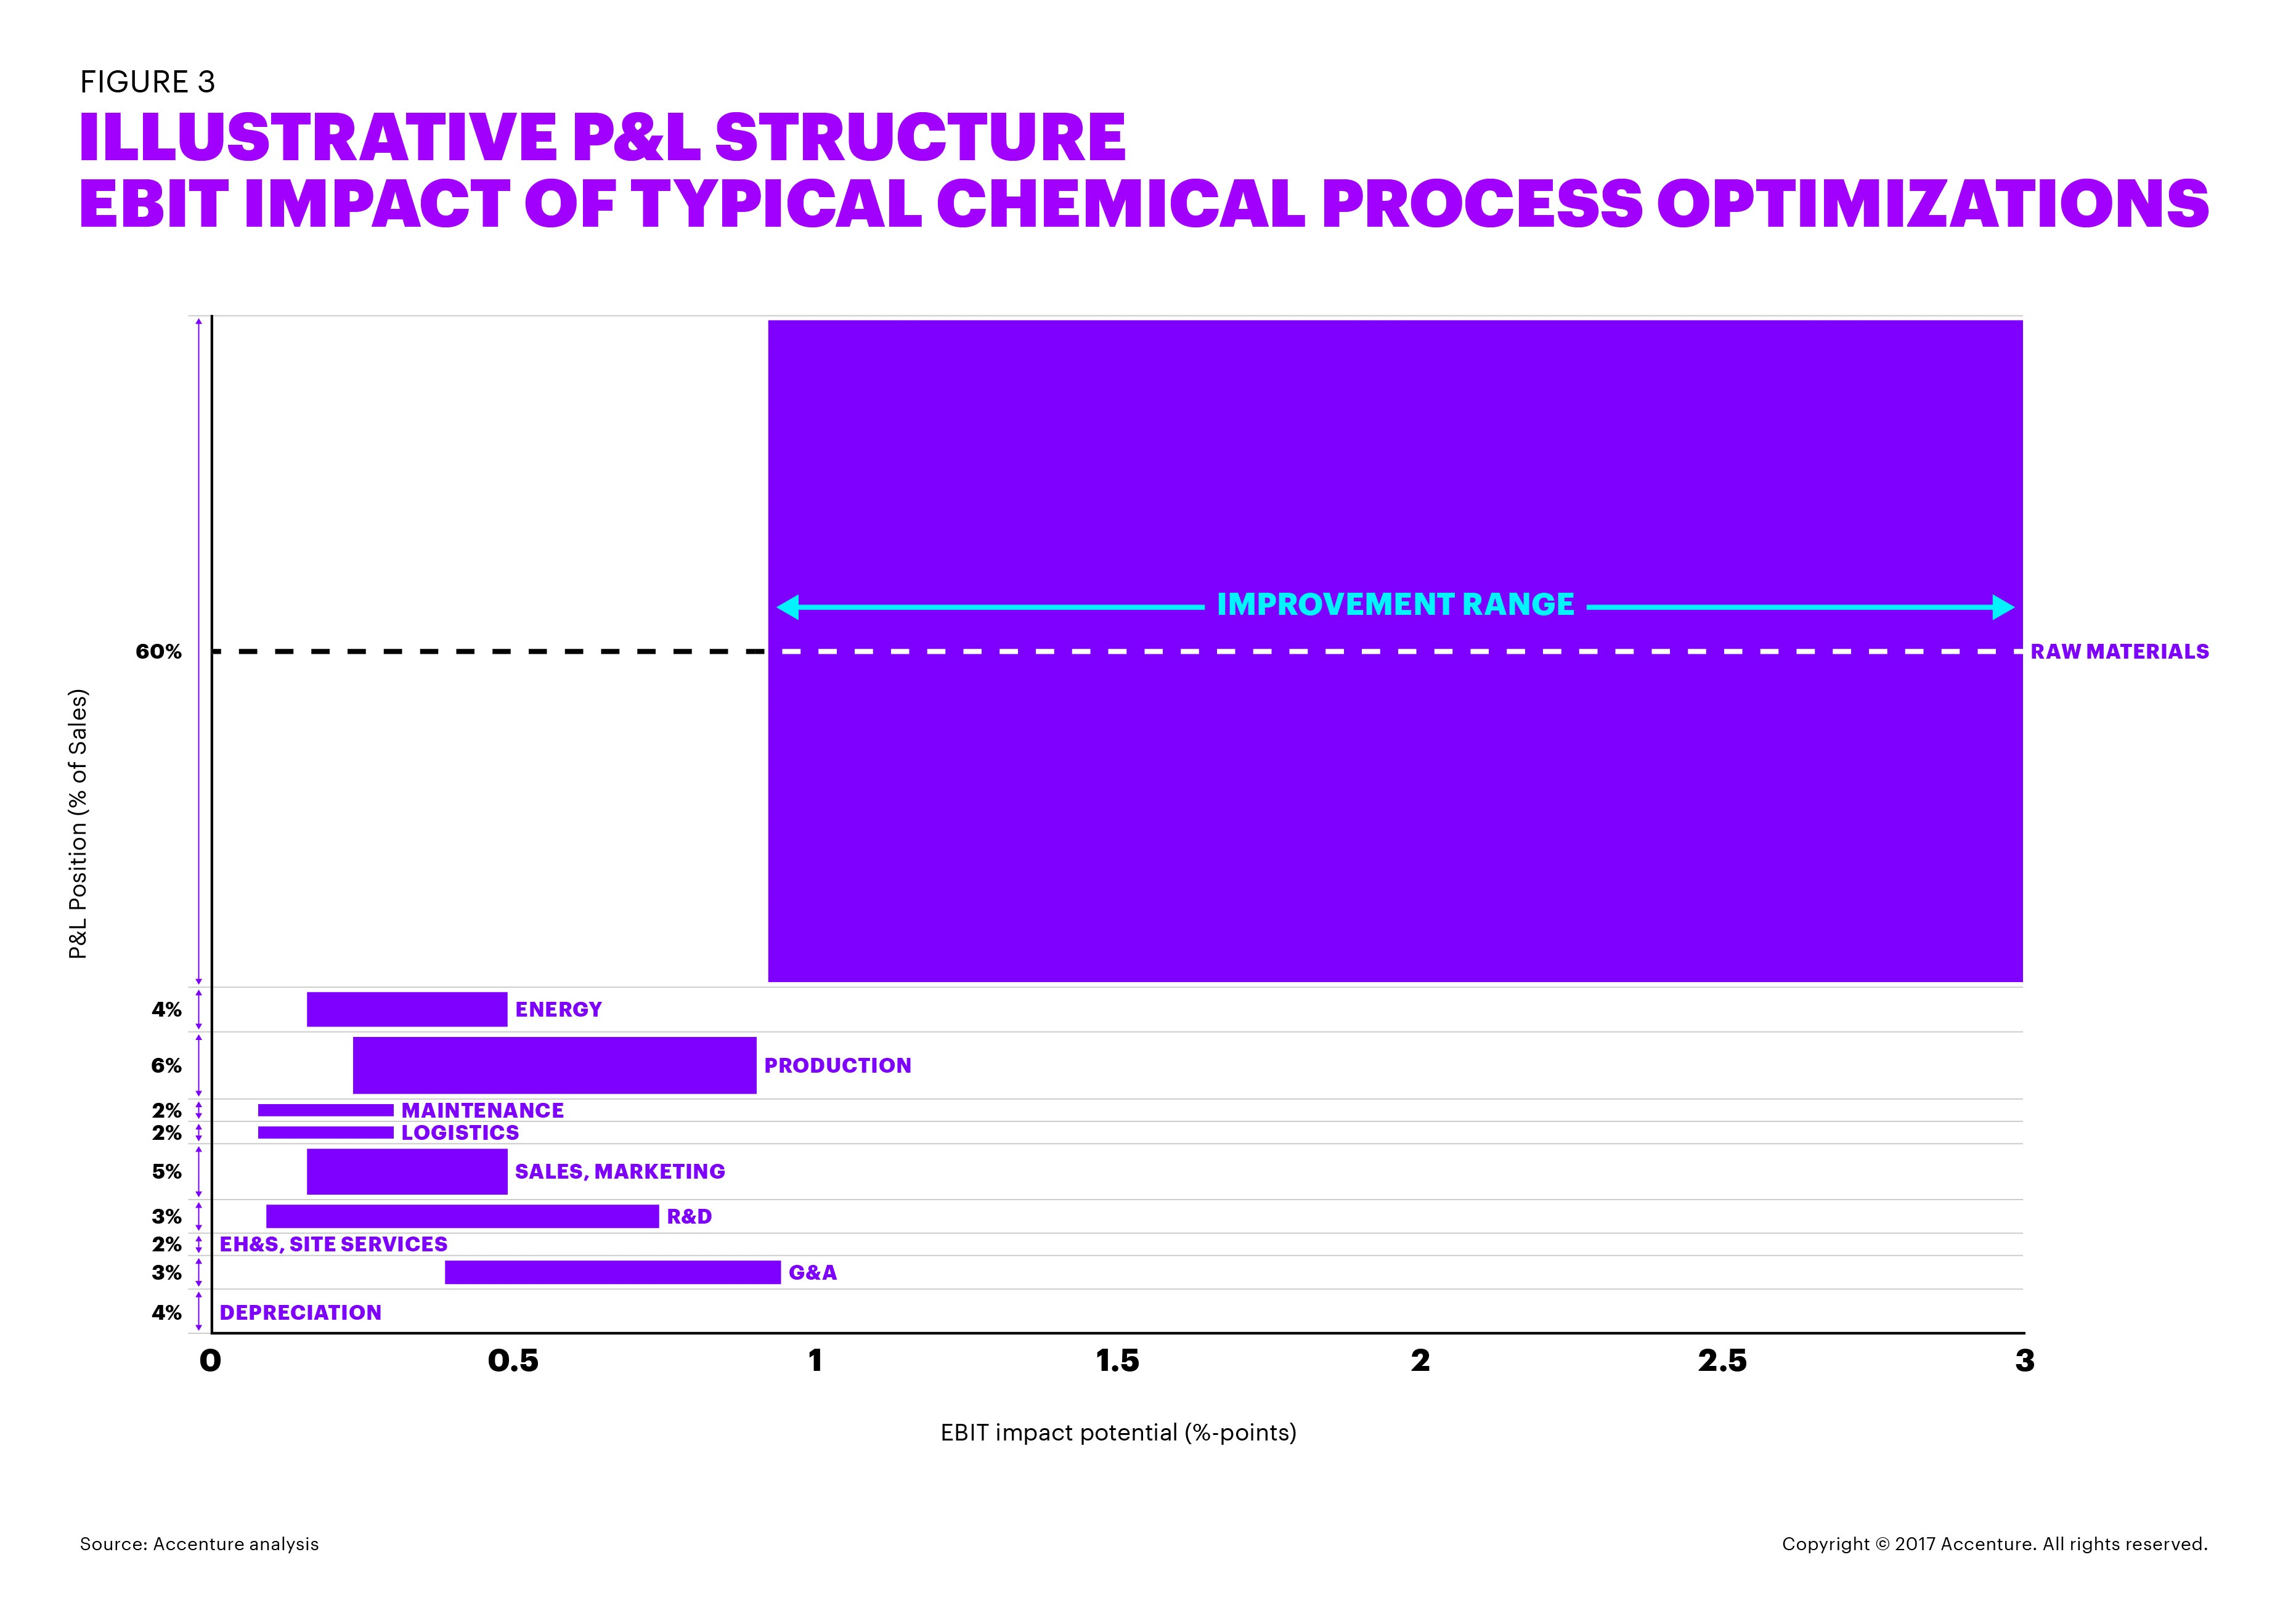 ILLUSTRATIVE P&L STRUCTURE EBIT IMPACT OF TYPICAL CHEMICAL PROCESS OPTIMIZATIONS